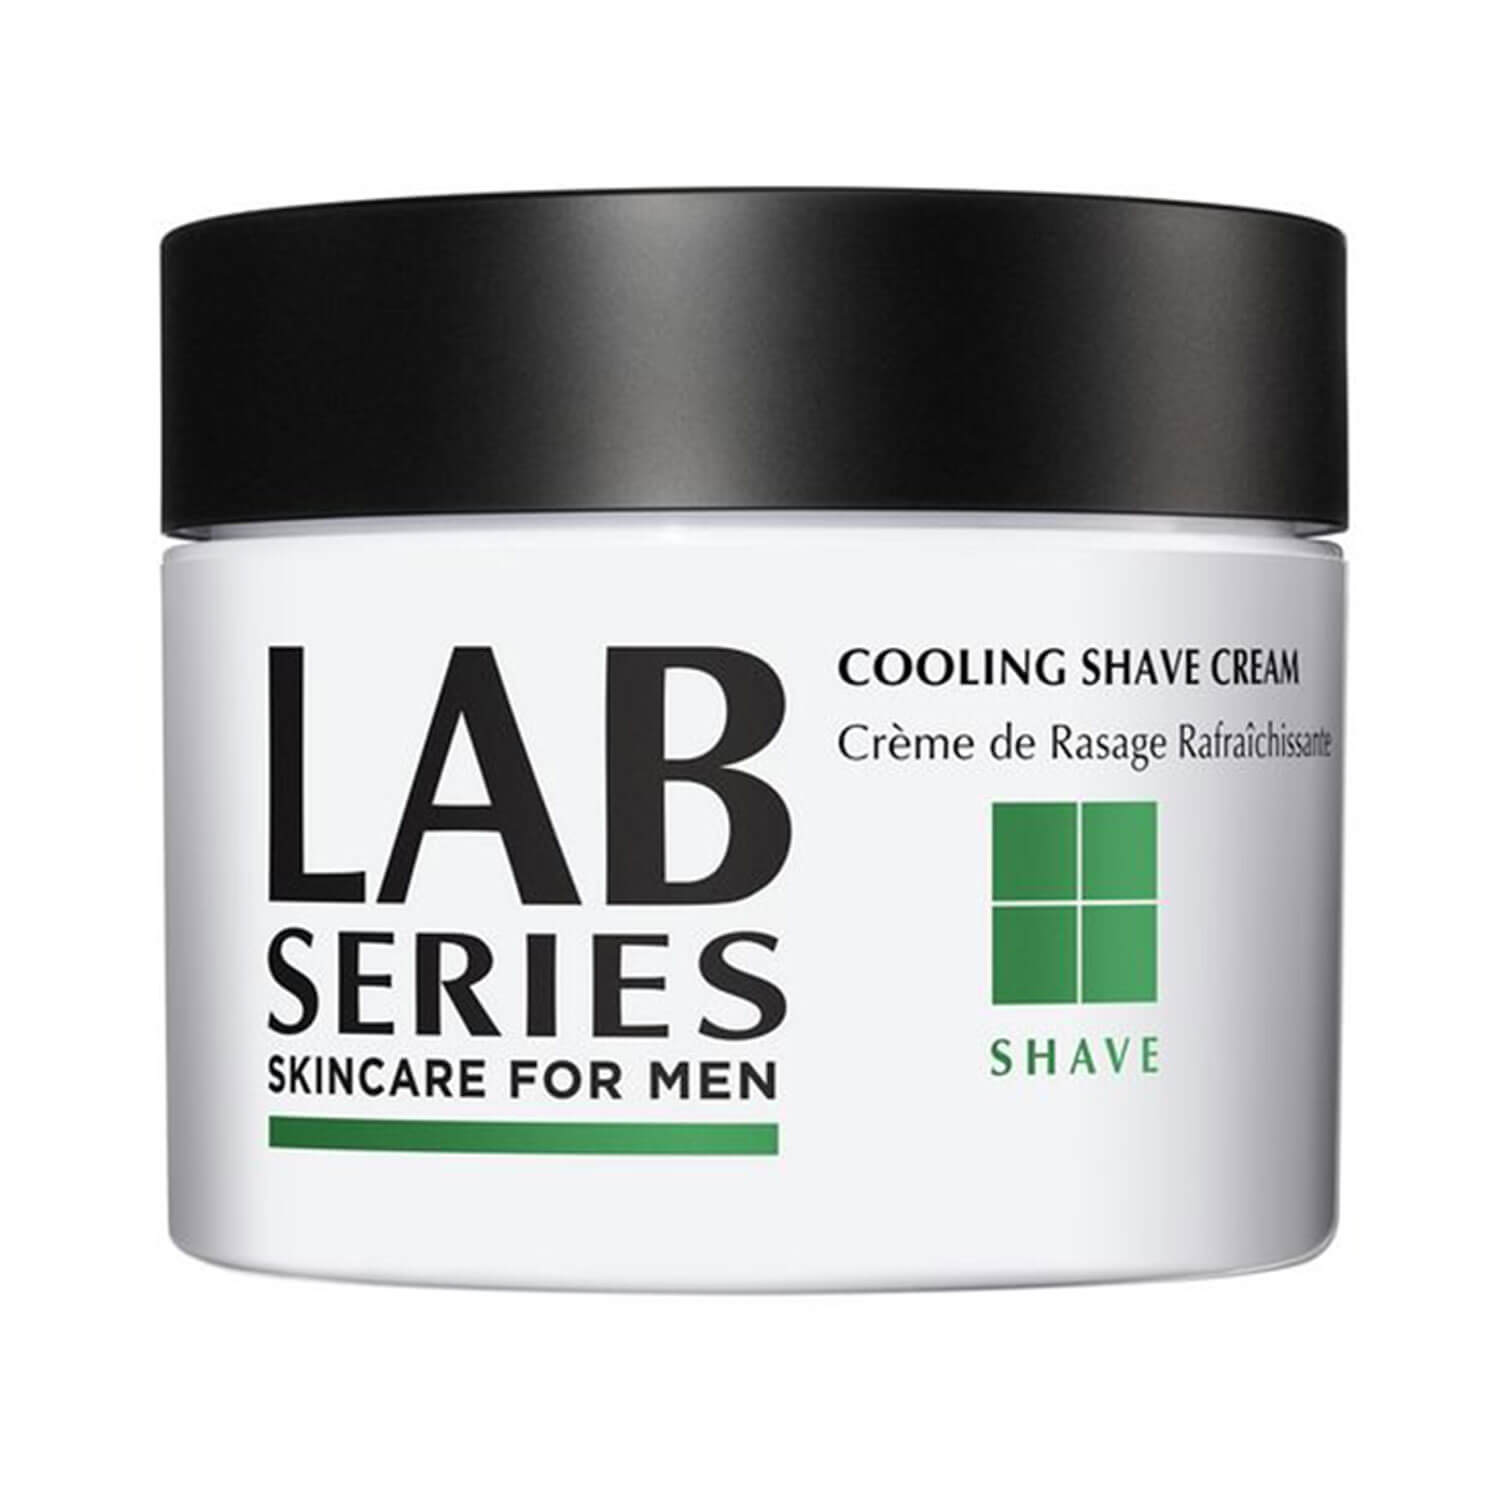 LS Shave - Cooling Shave Cream